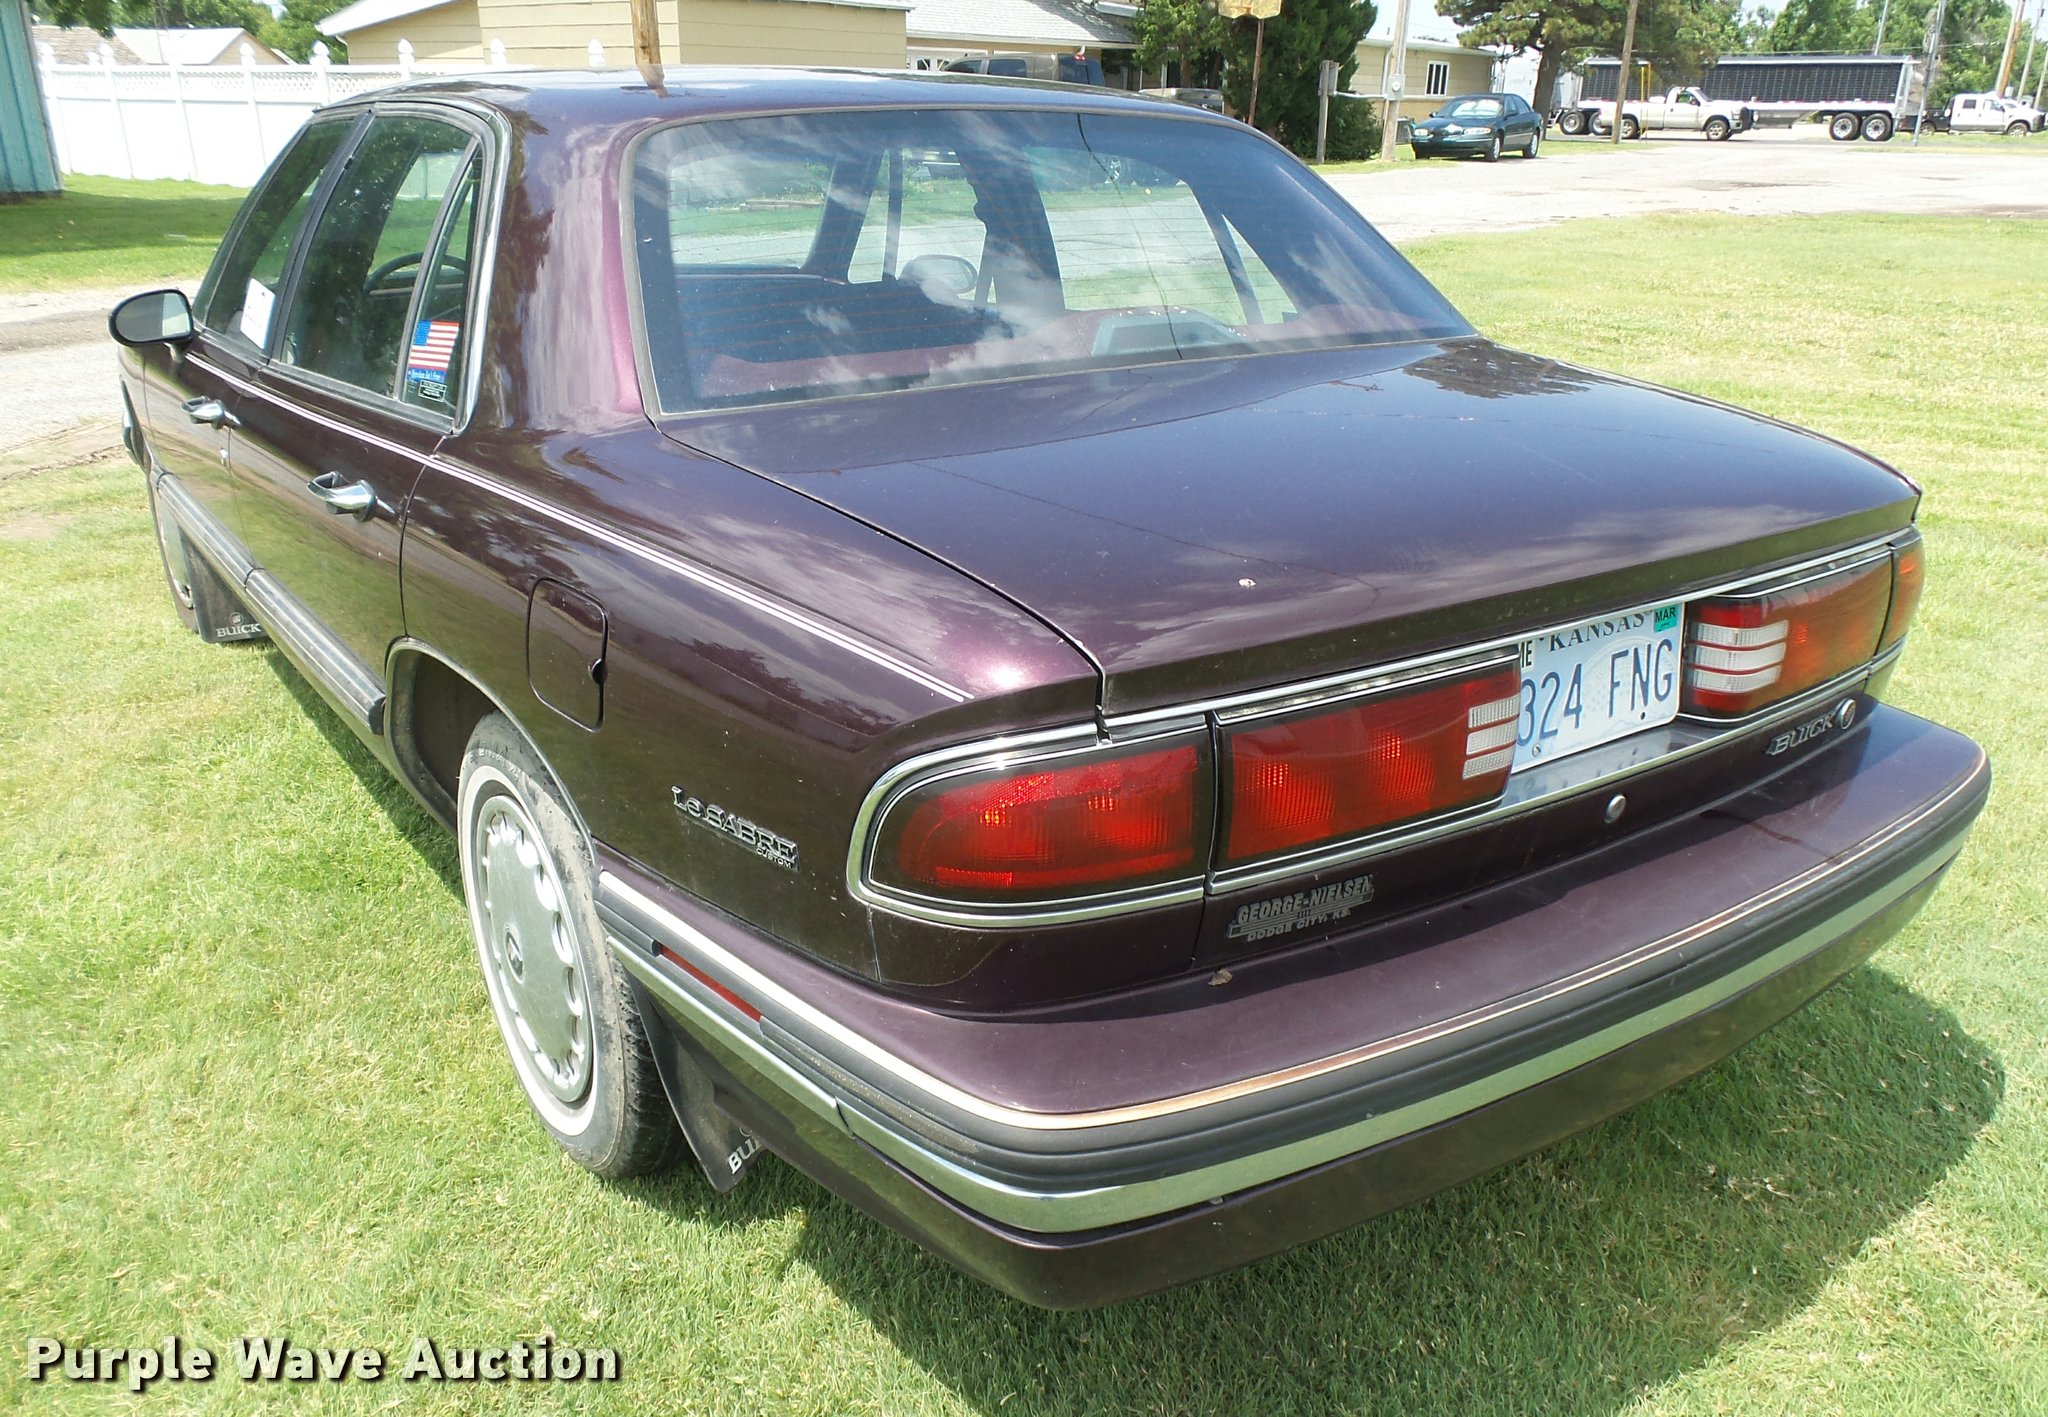 ct buick in of lesabre used watertown custom for near luxury sale hartford